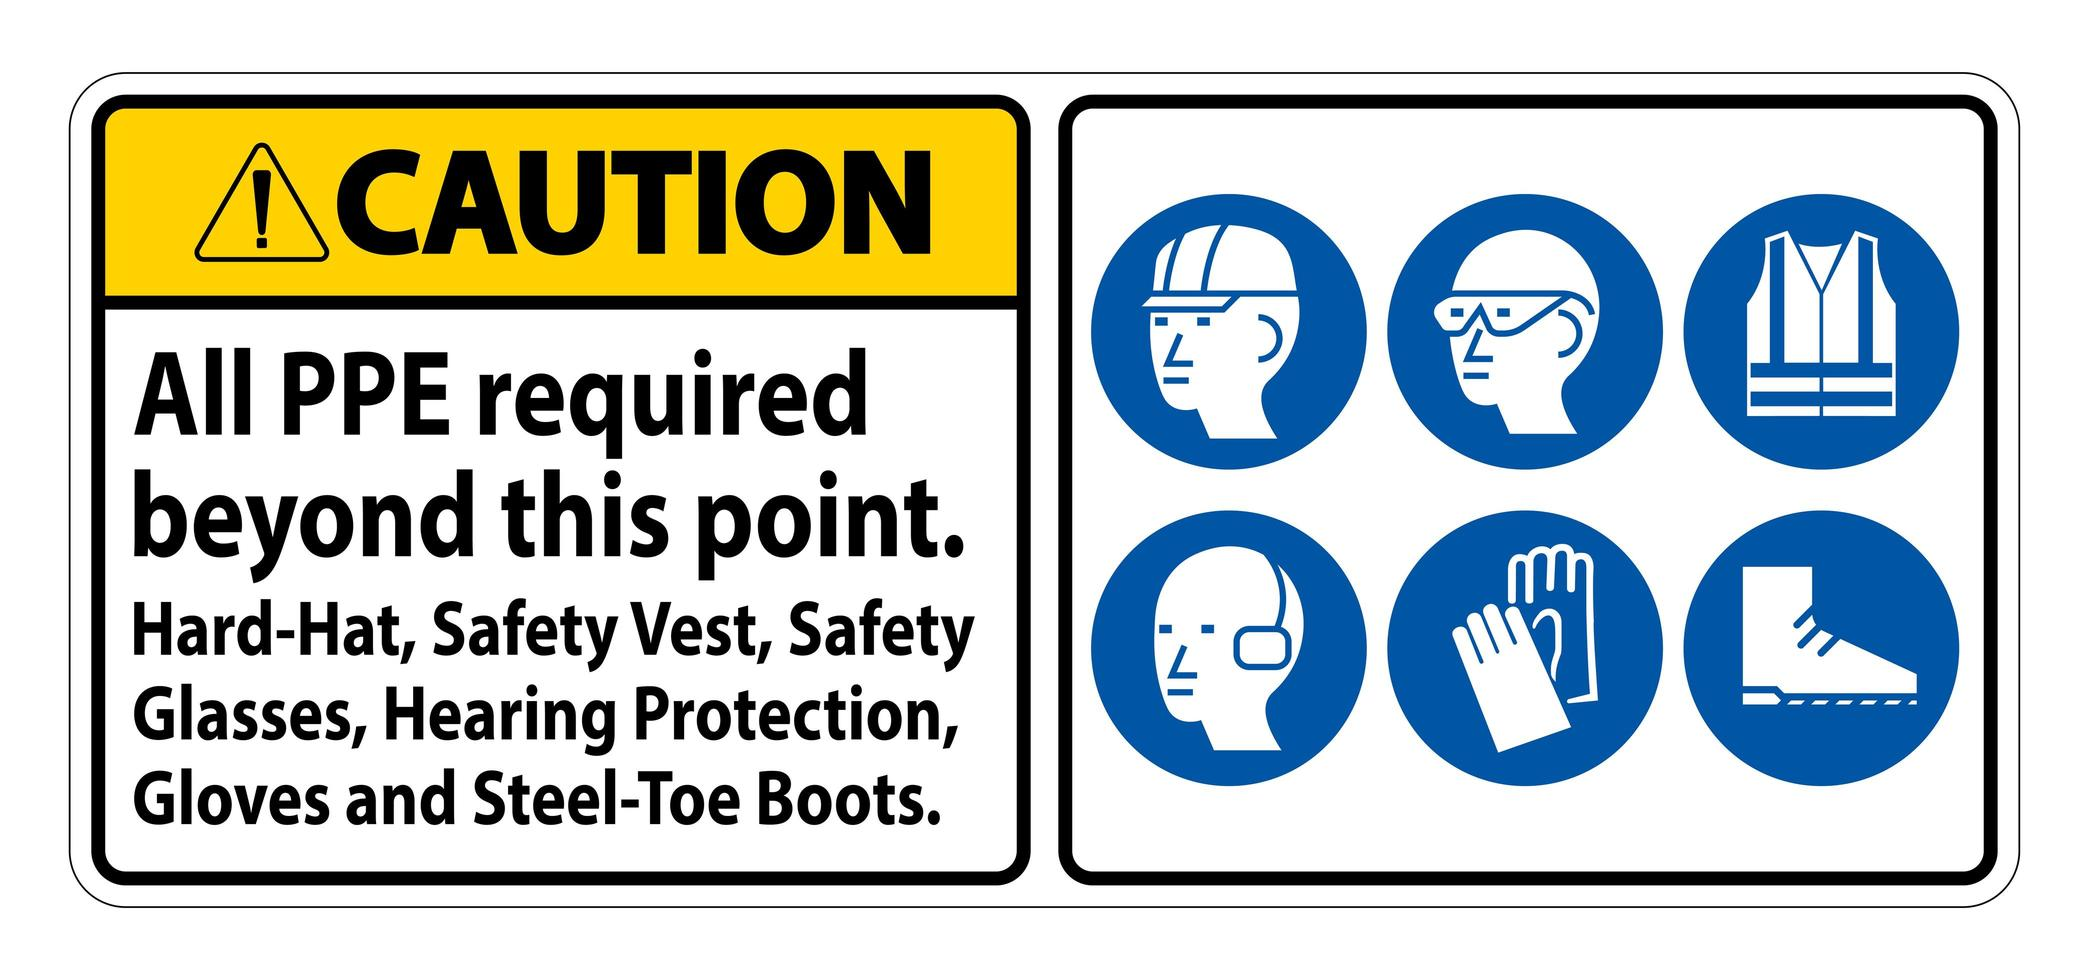 PPE Required Beyond This Point Sign  vector